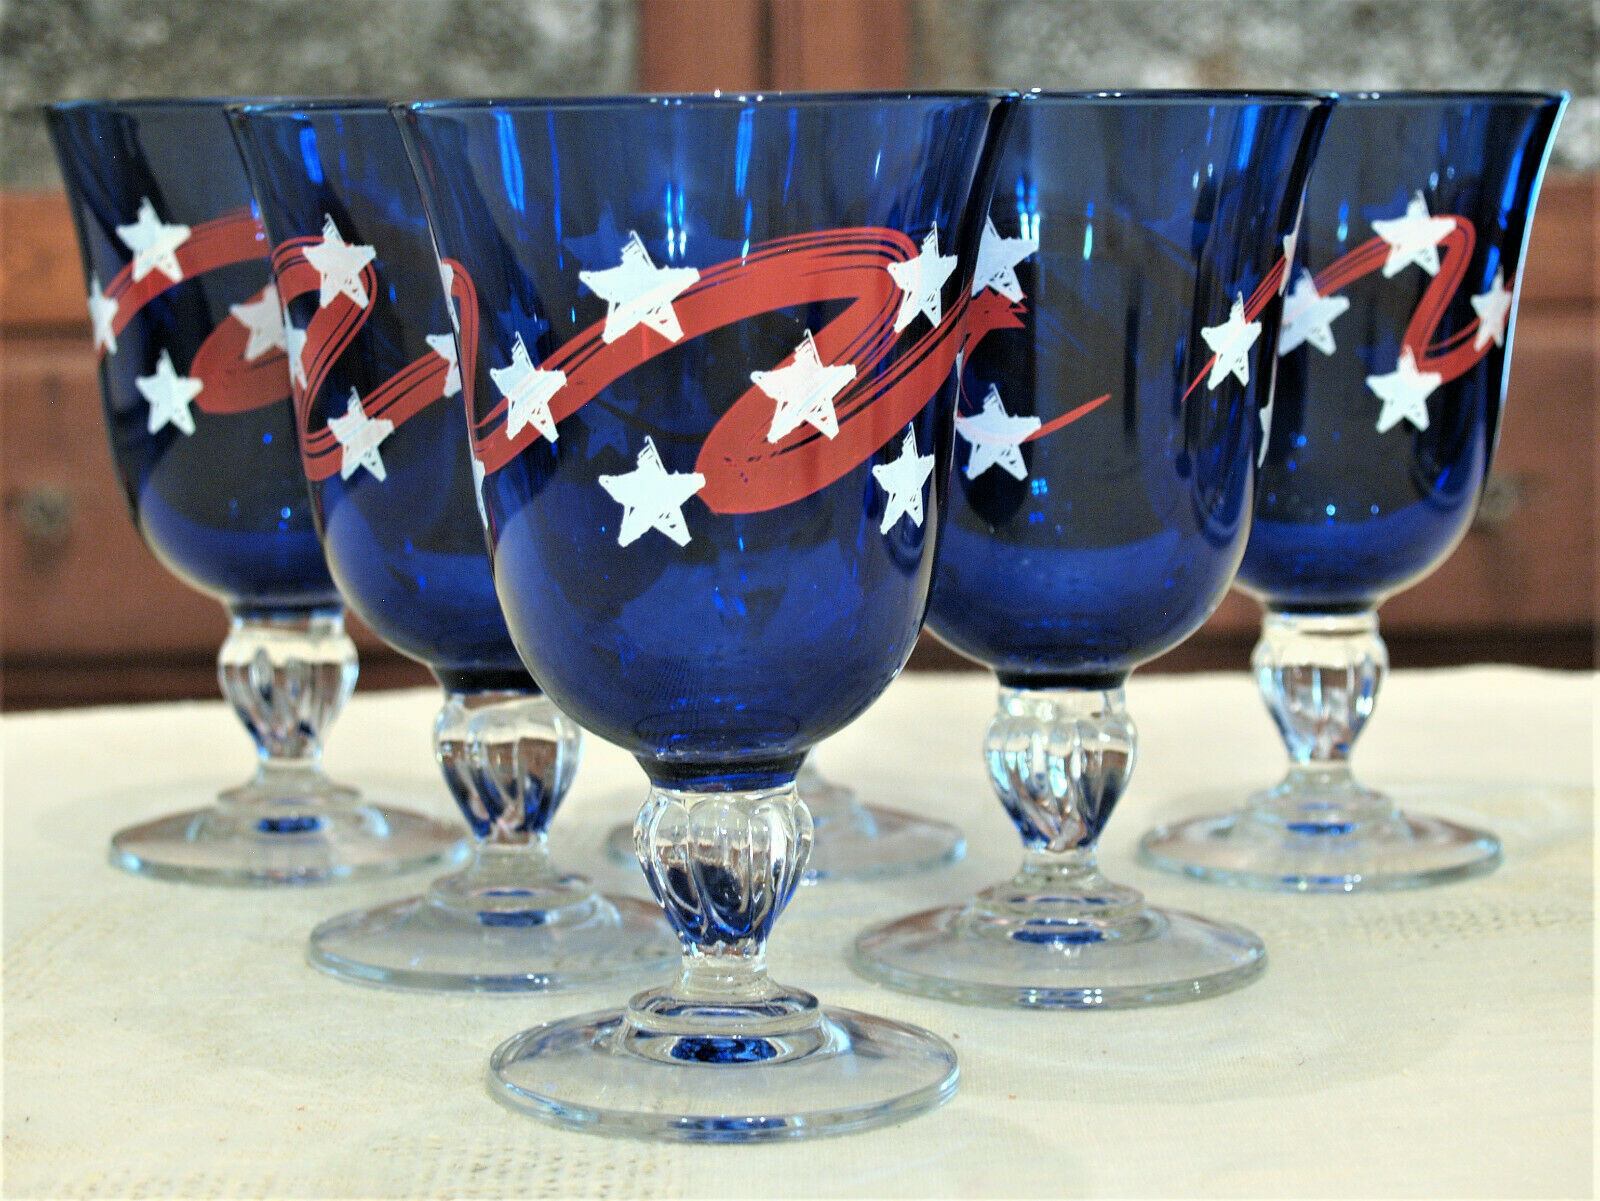 July 4th Memorial Day bluee Goblets Stars Stripes Red White